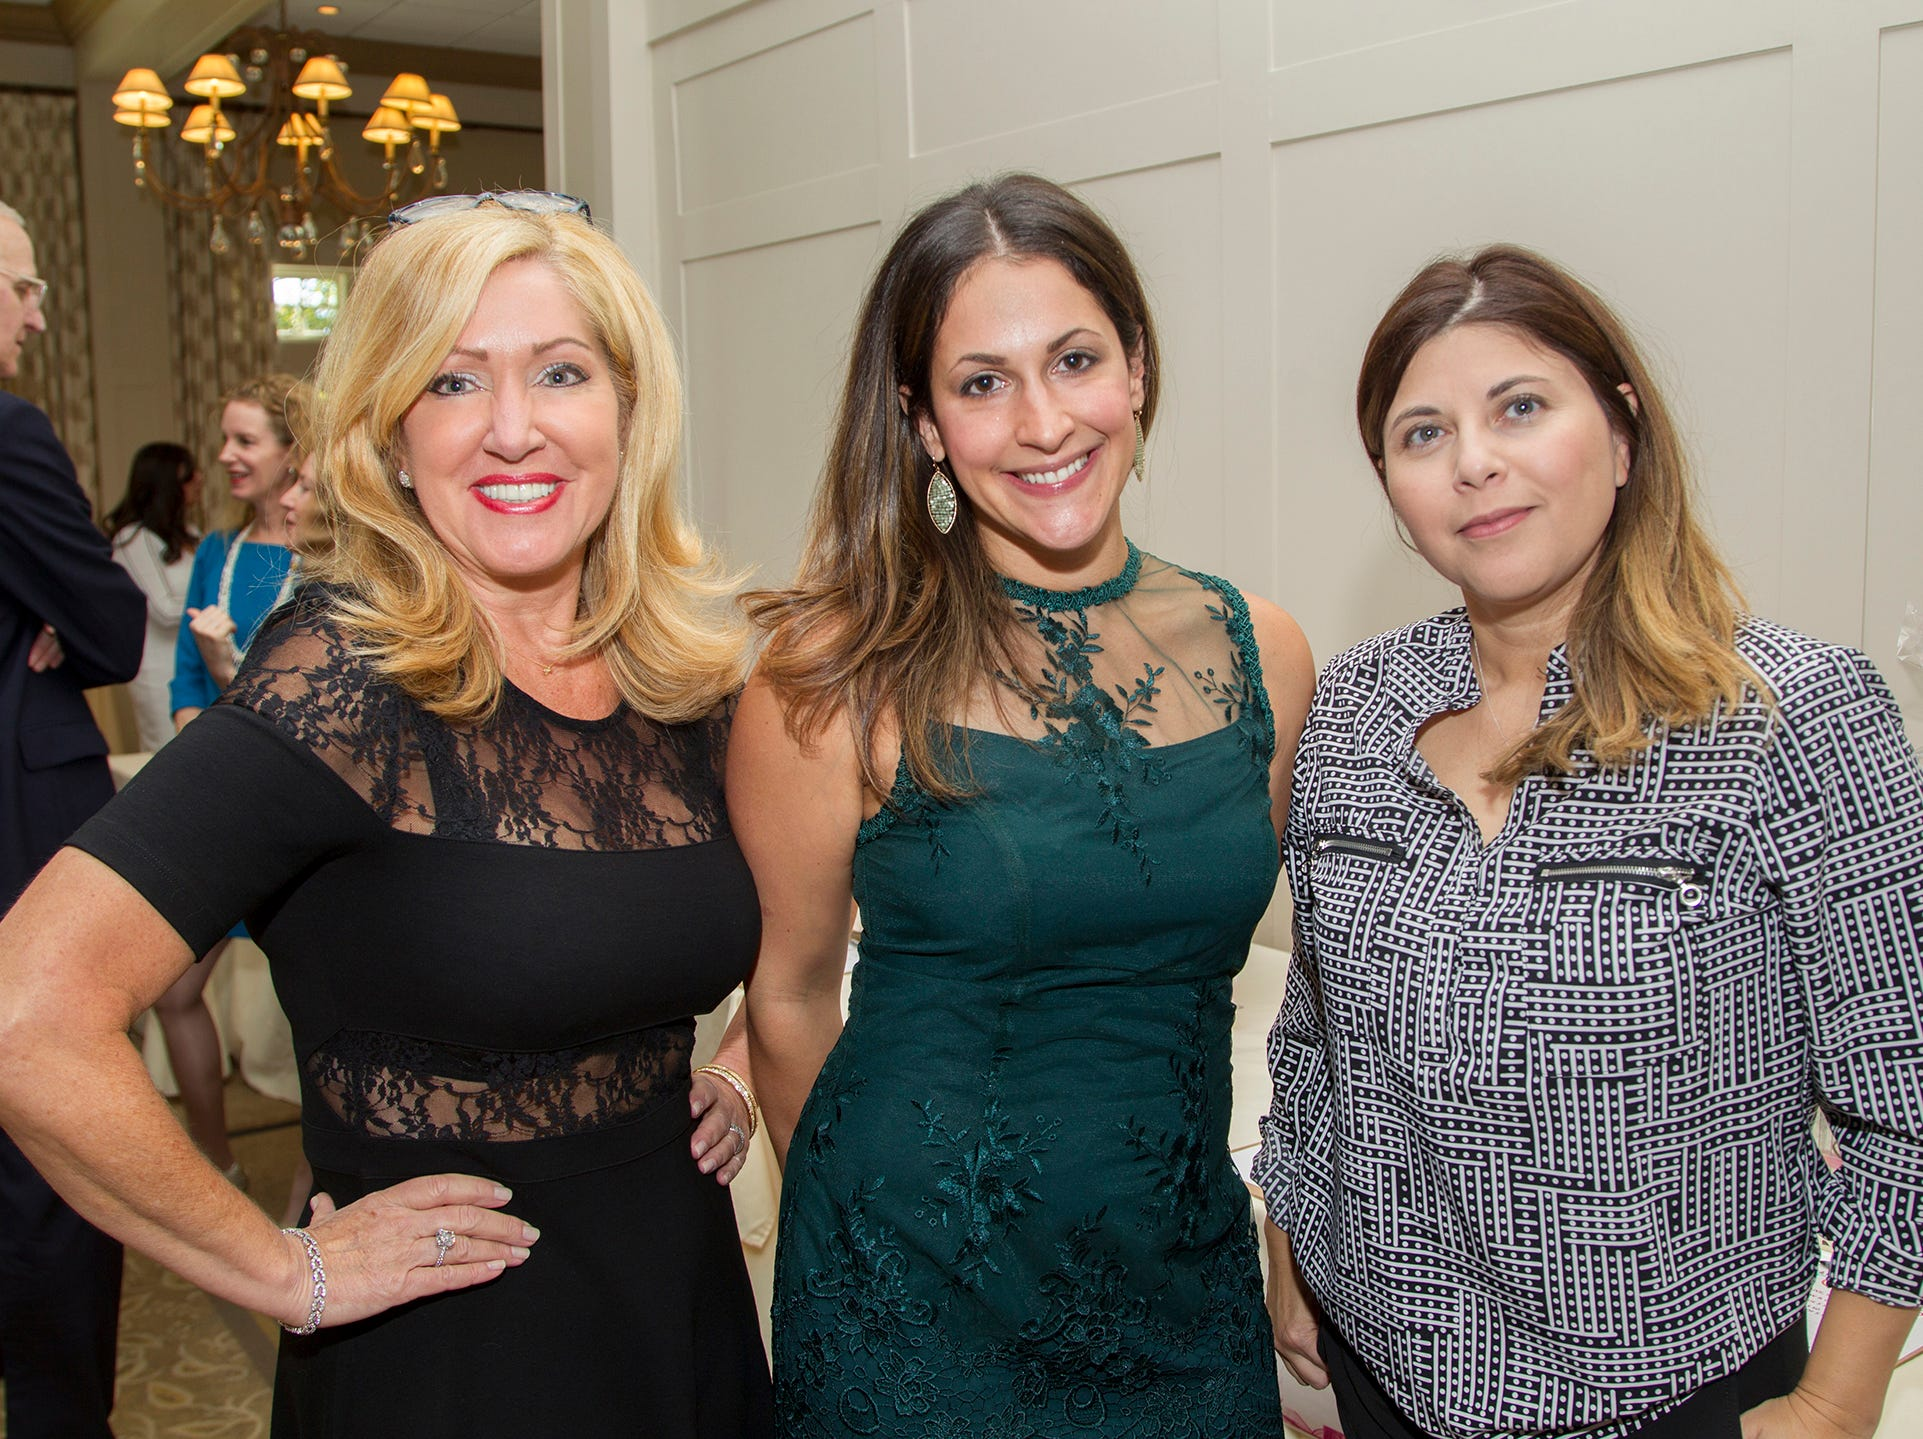 Debbie Crispano, Nicole Landskowsky, Alexandria Bond. Spring Lake Toys Foundation held its 3rd annual fundraising gala luncheon at Indian Trail Club in Franklin Lakes. The luncheon fundraiser raises funds for children with illnesses. 10/18/2018